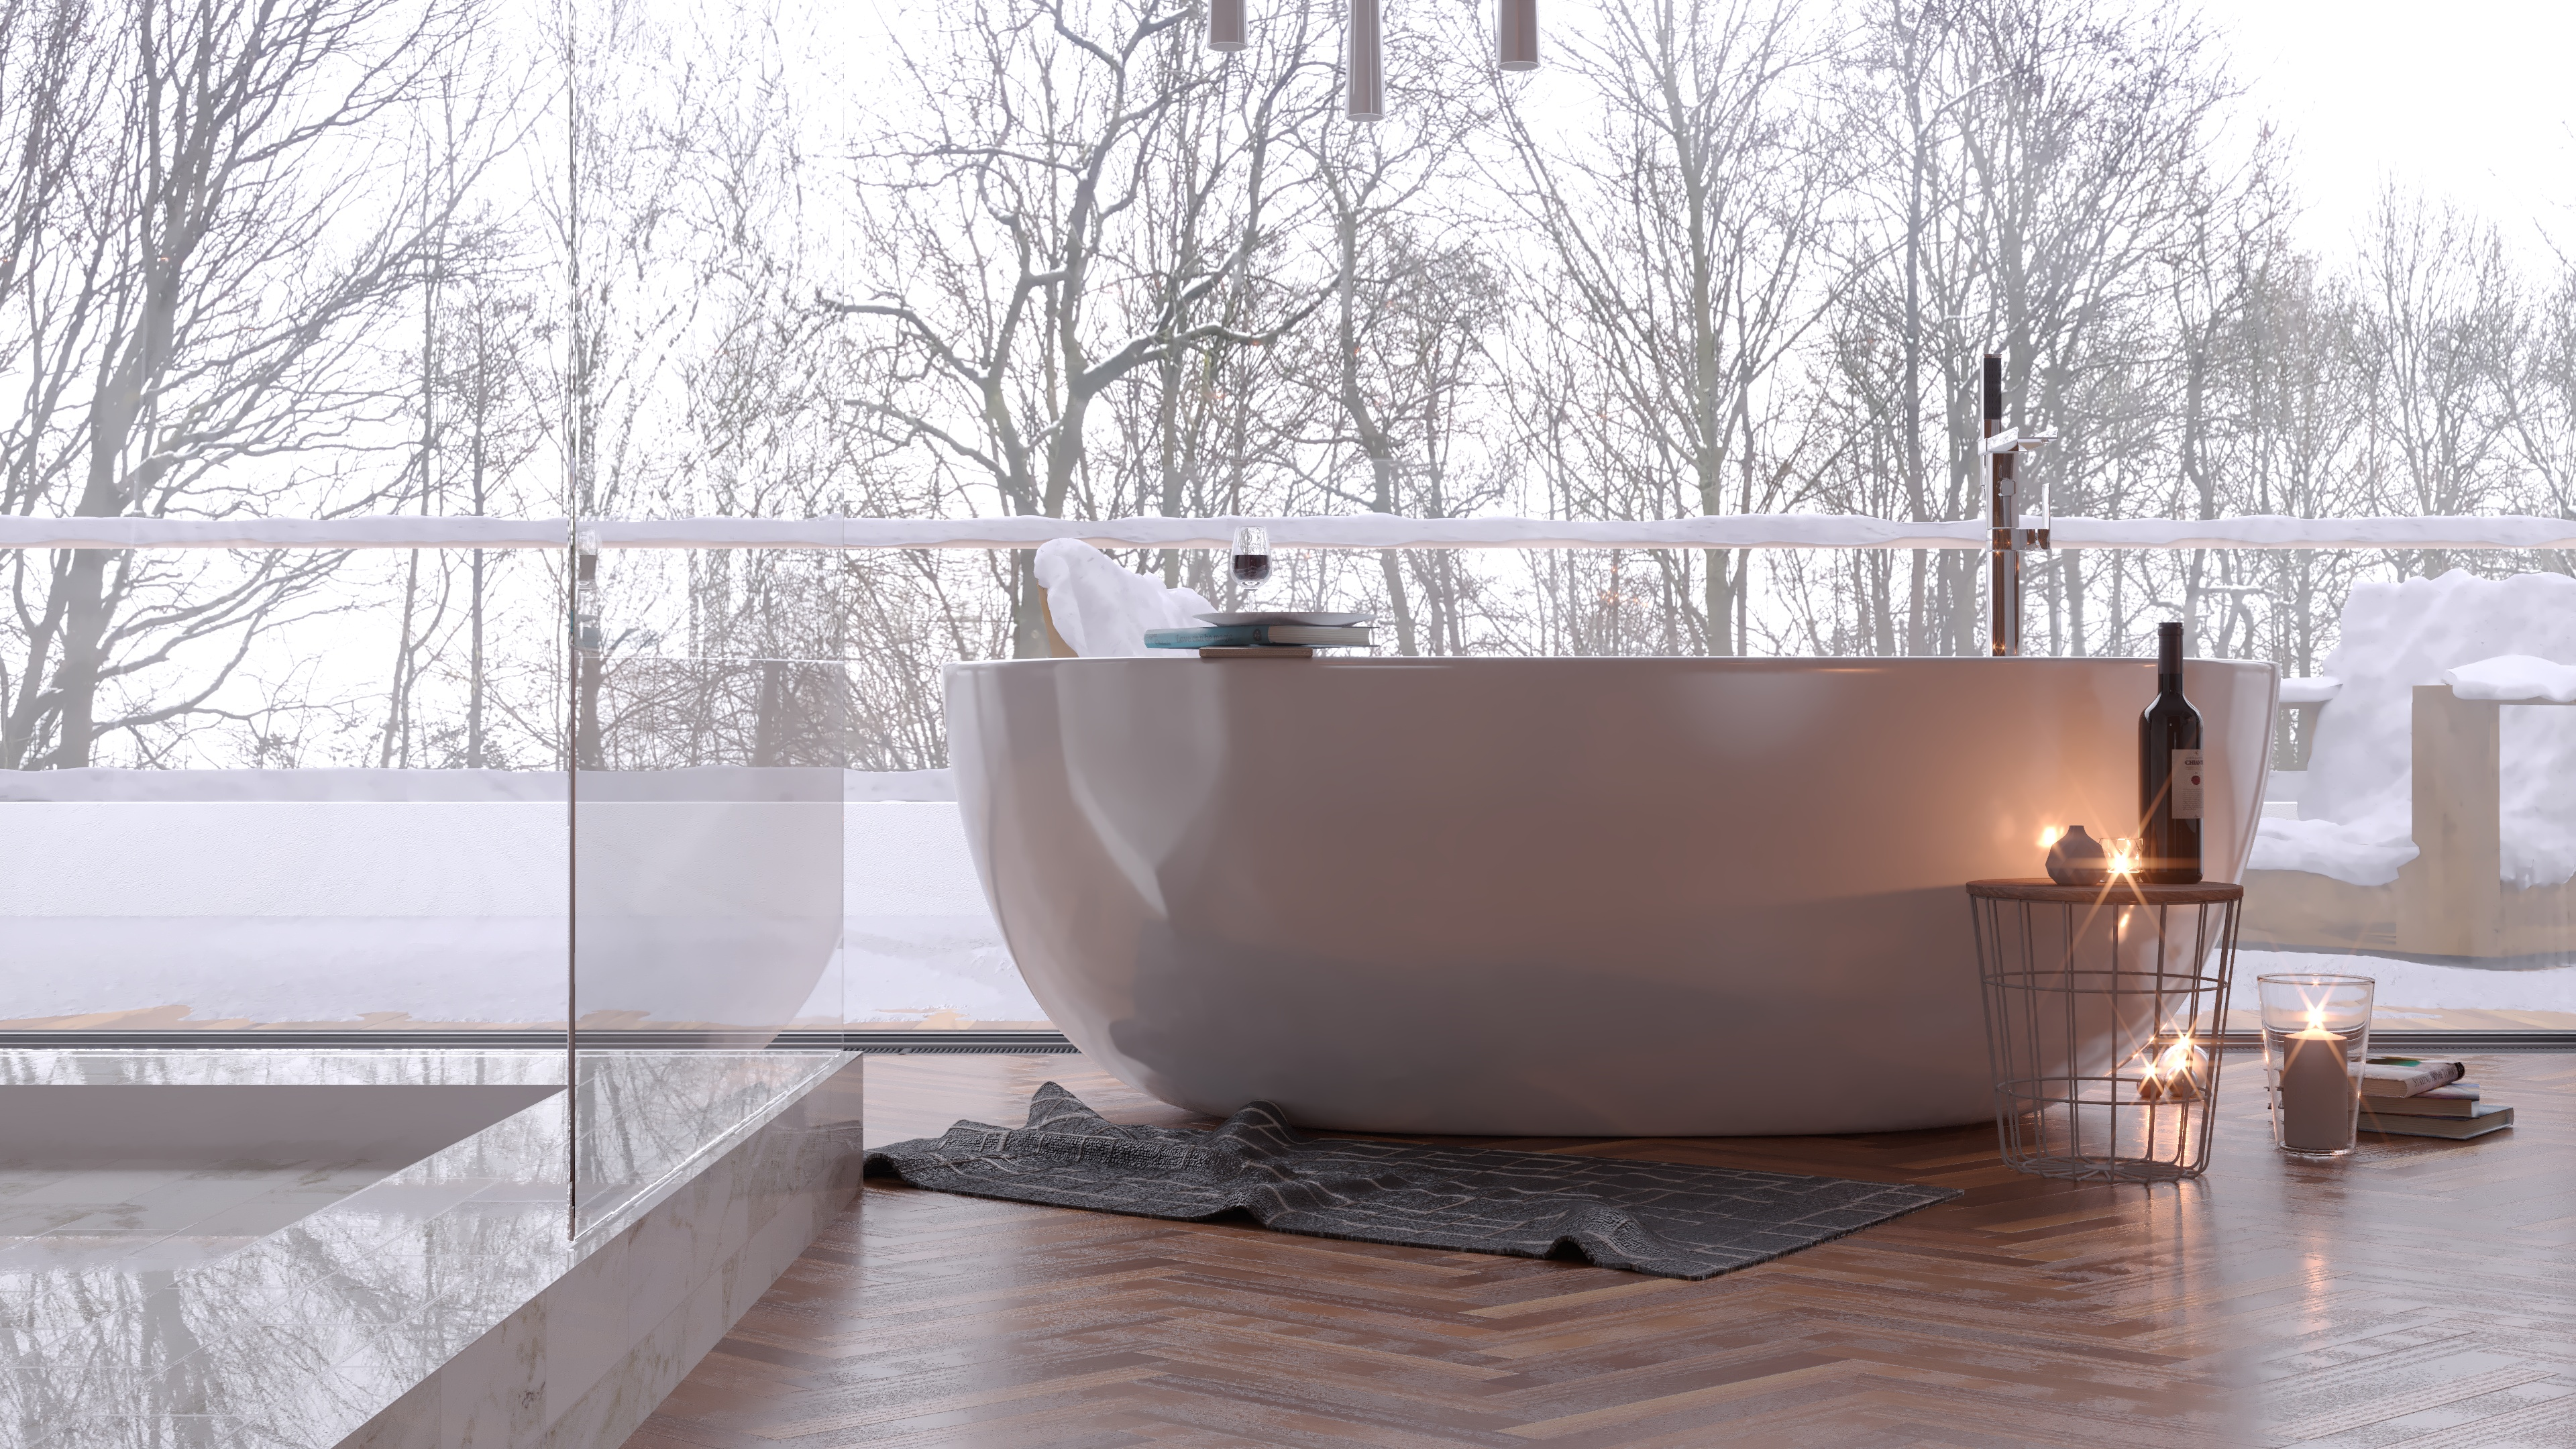 bathtubs 10 Bathtubs To Melt Away The Winter Coldness interior render blender corona